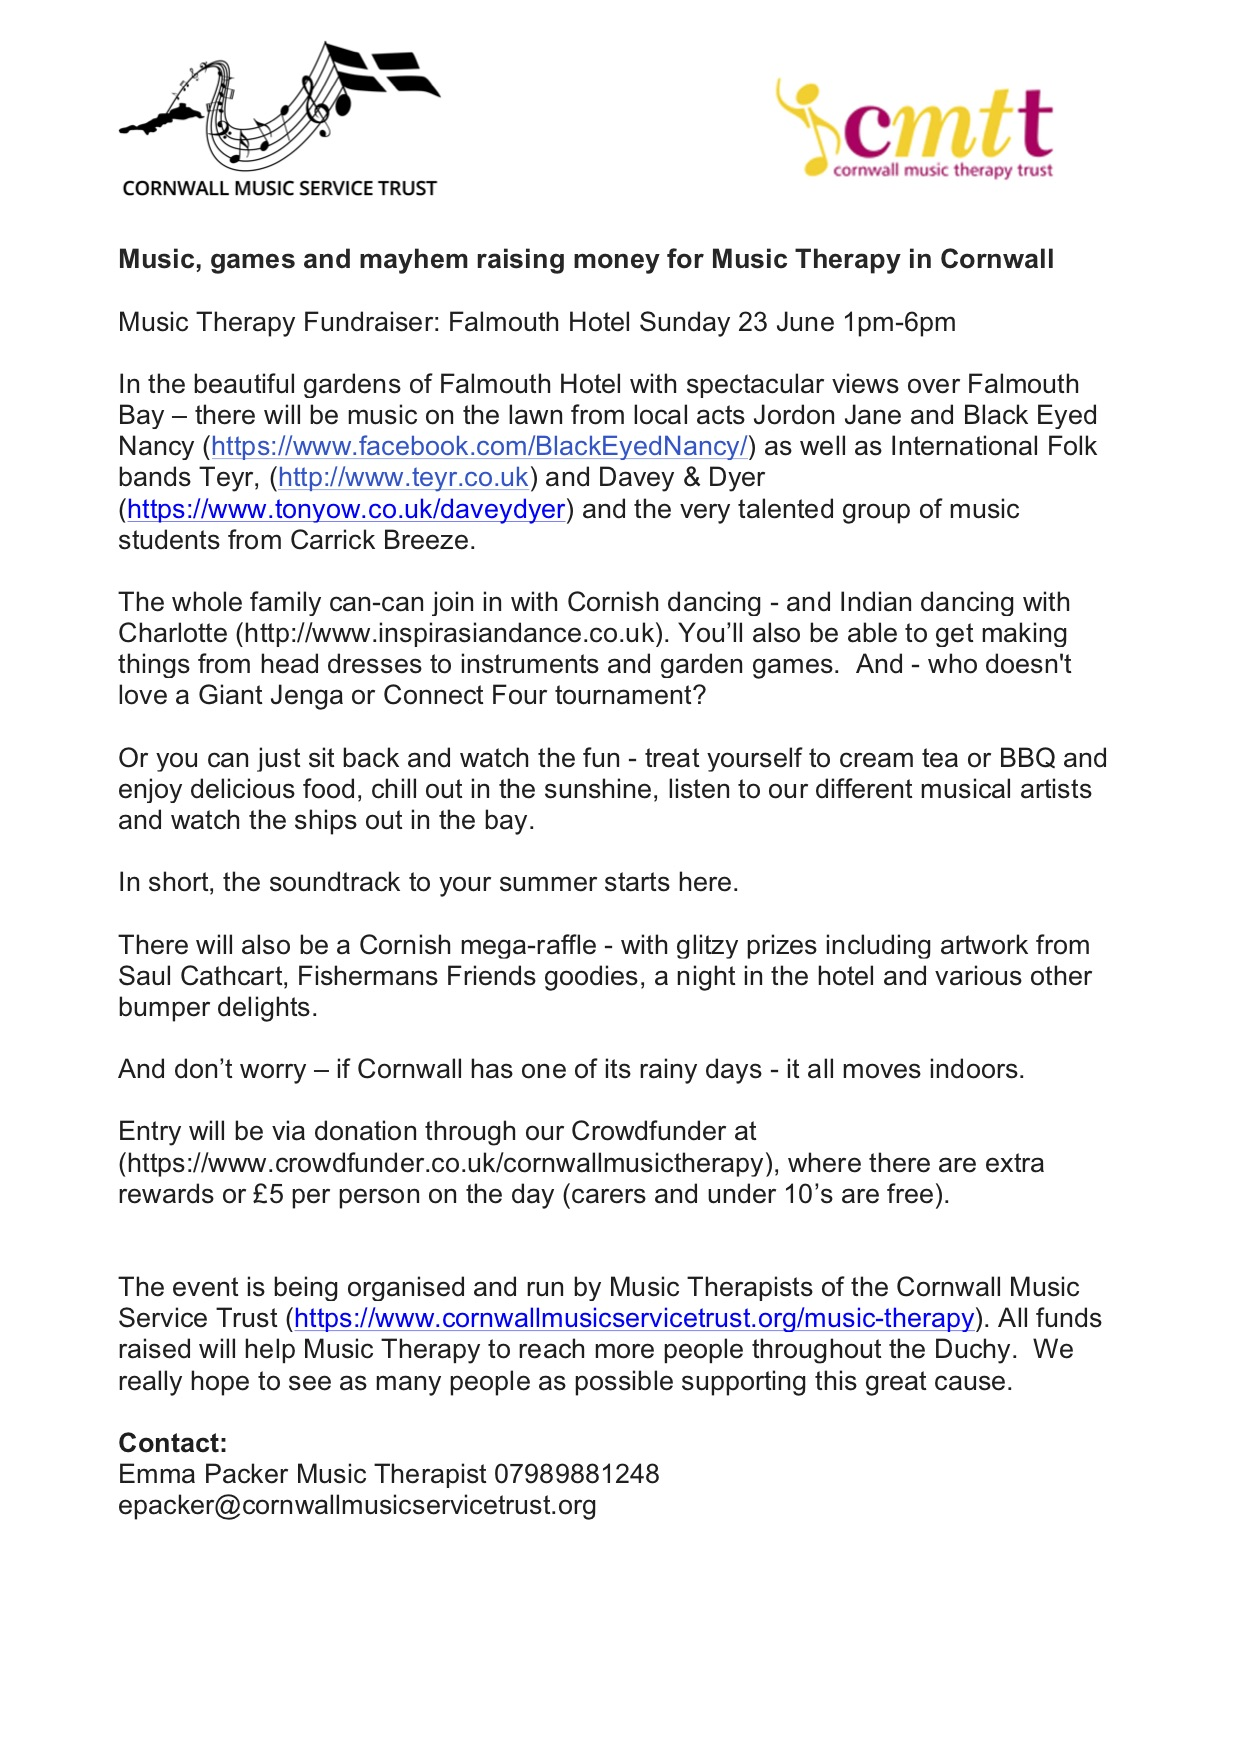 Music Therapy Fundraiser Press Release.jpg